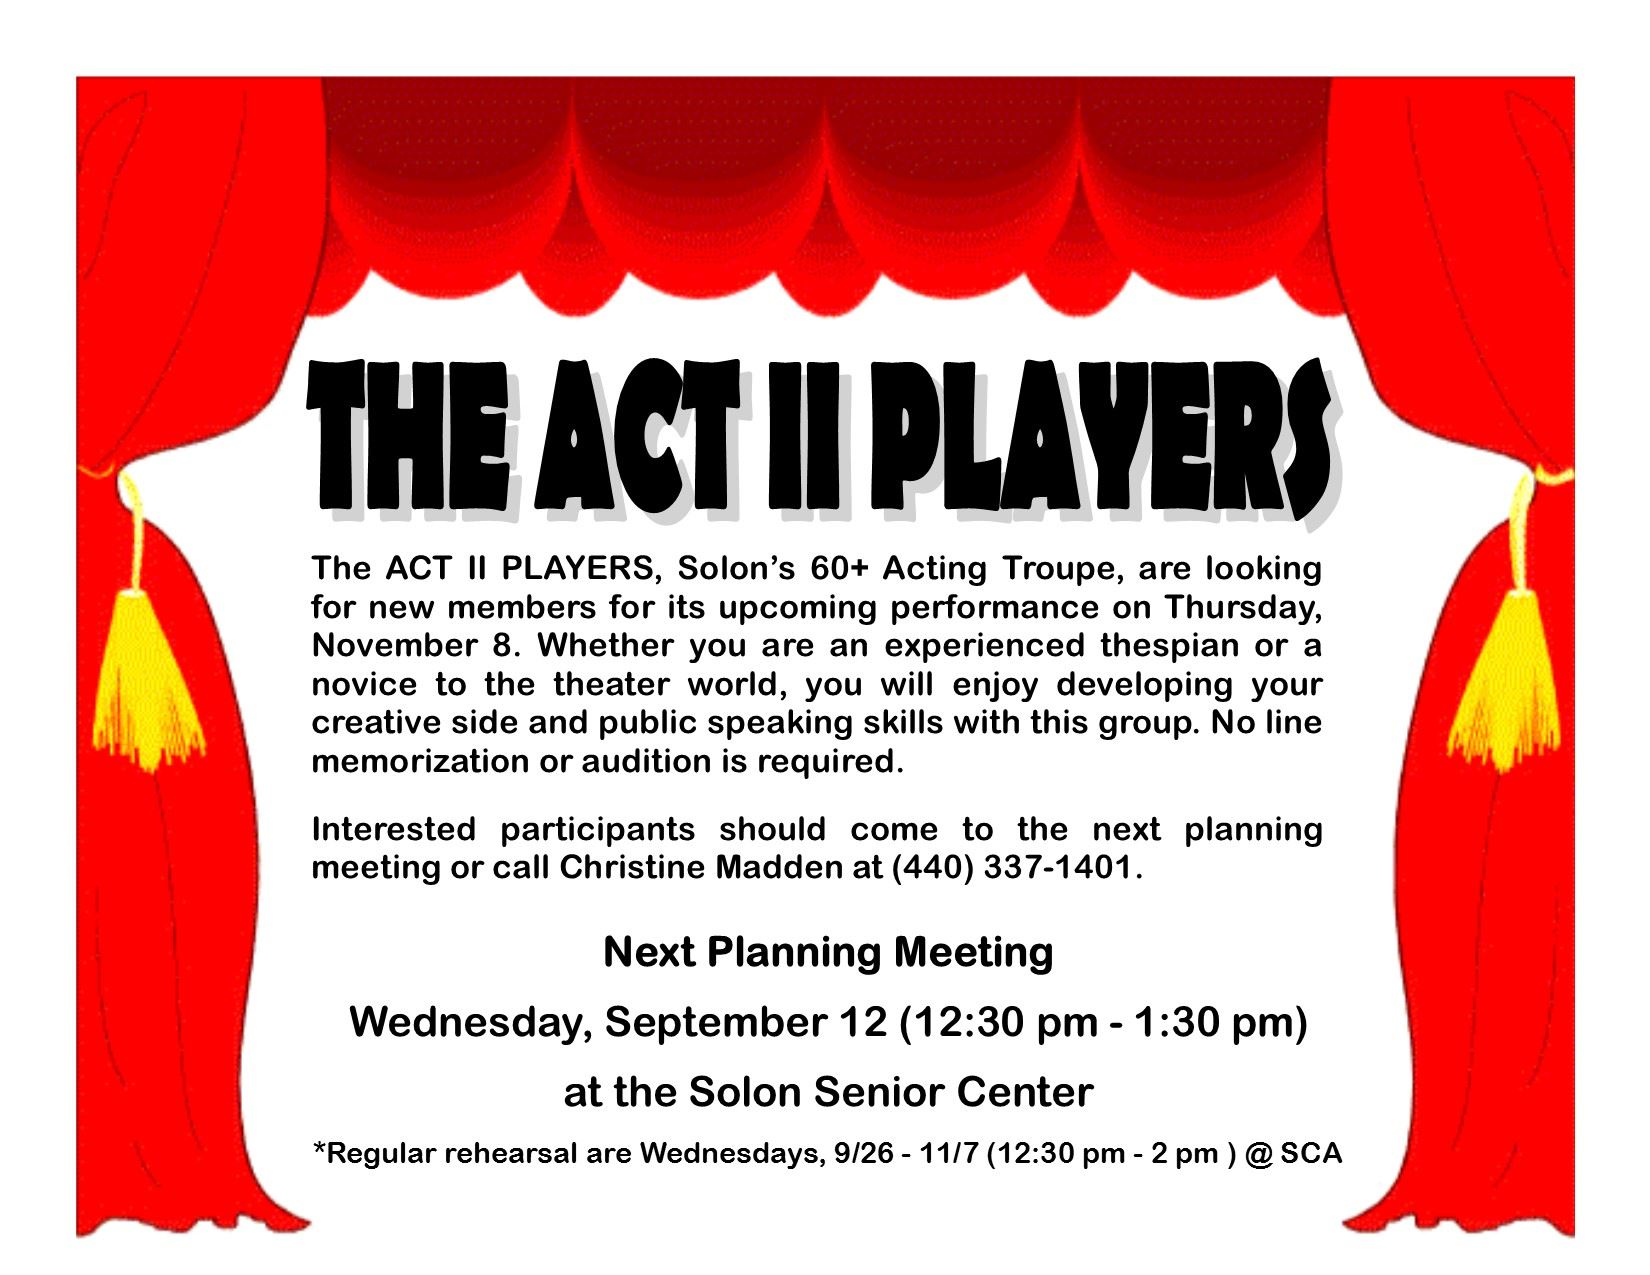 ACT II PLAYERS FLYER_9-12 Meeting